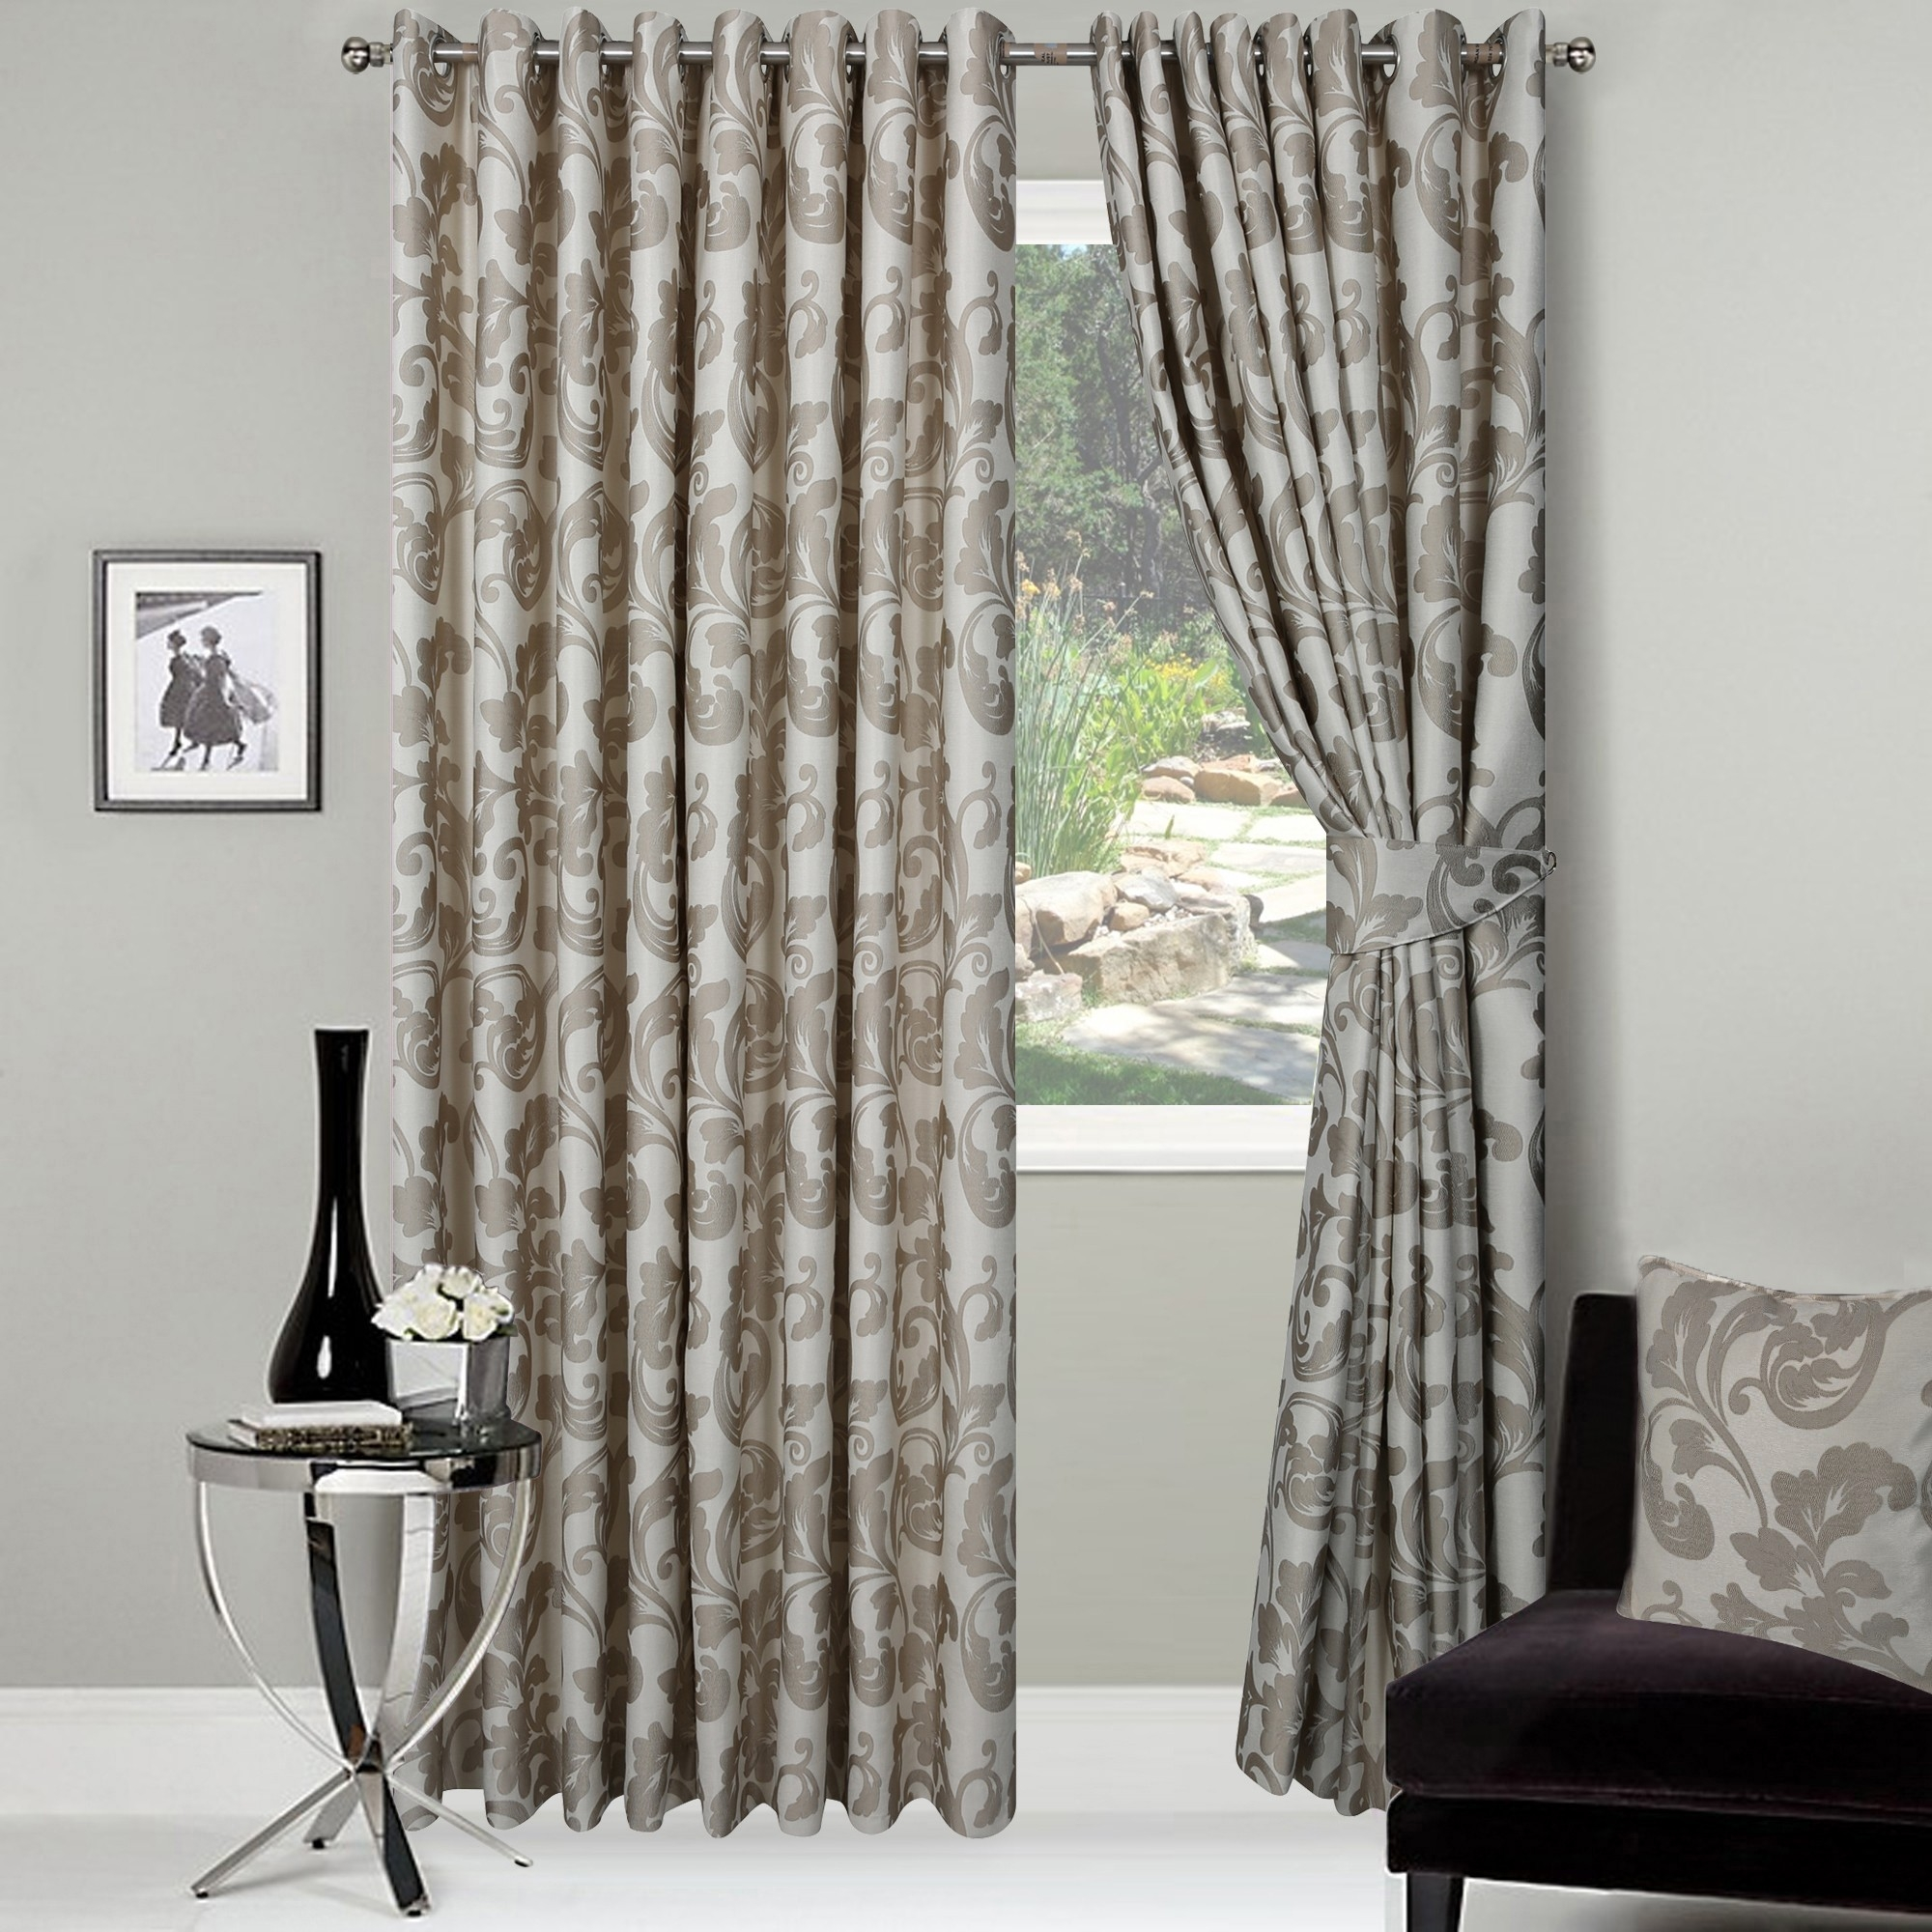 15 Best Ideas Ready Made Curtains for Large Bay Windows